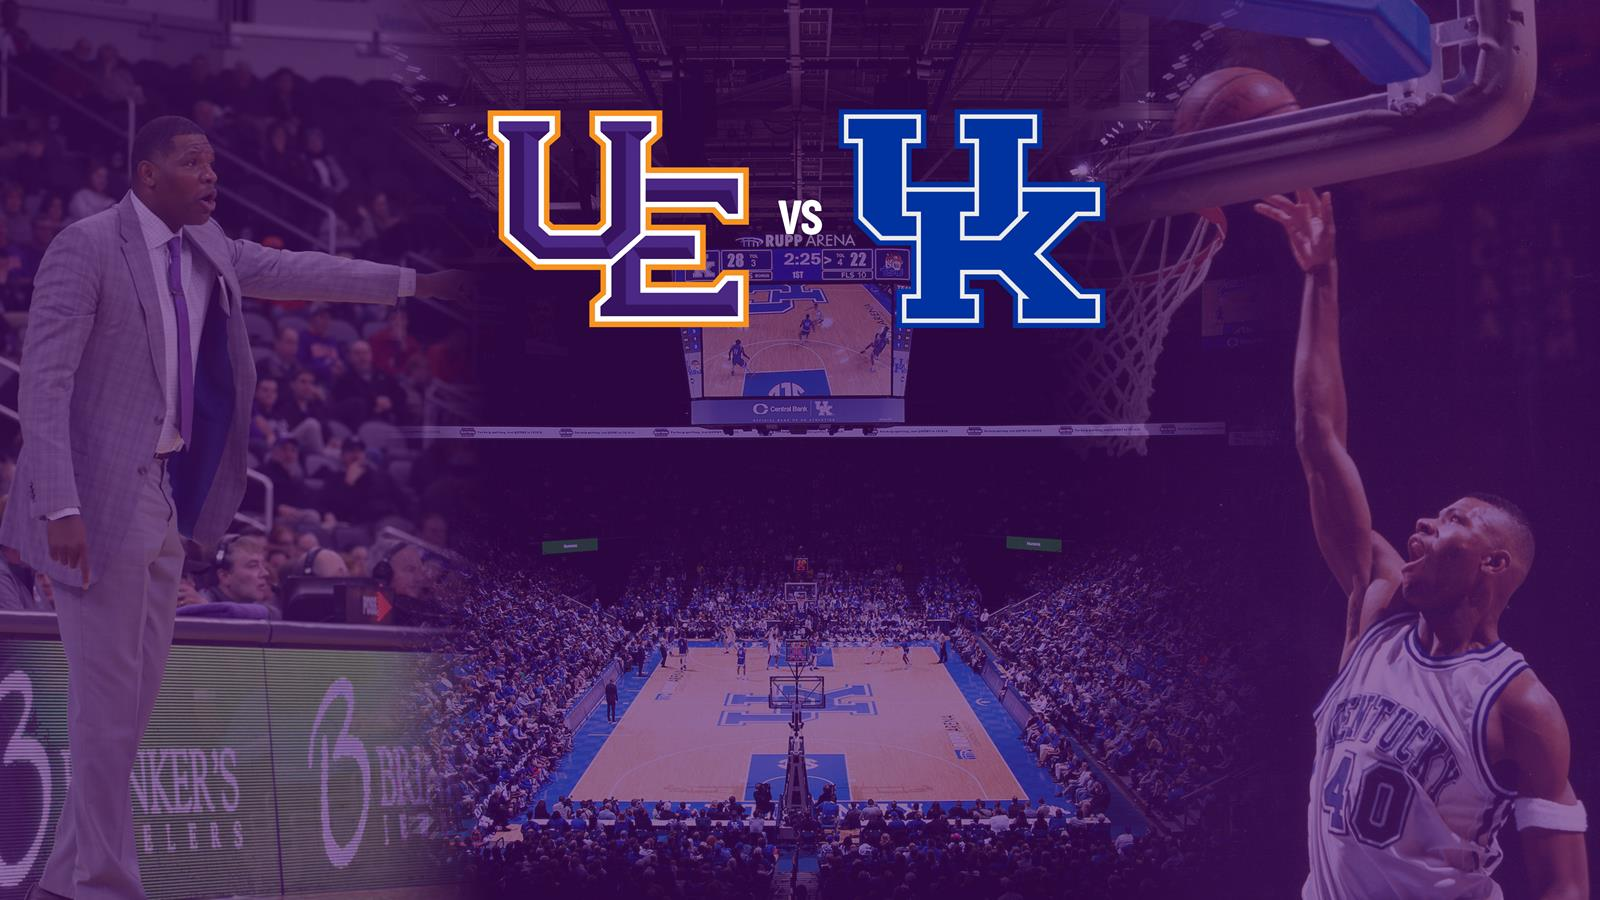 photo about Kentucky Basketball Schedule Printable titled Mens basketball provides Kentucky toward 2019-20 agenda